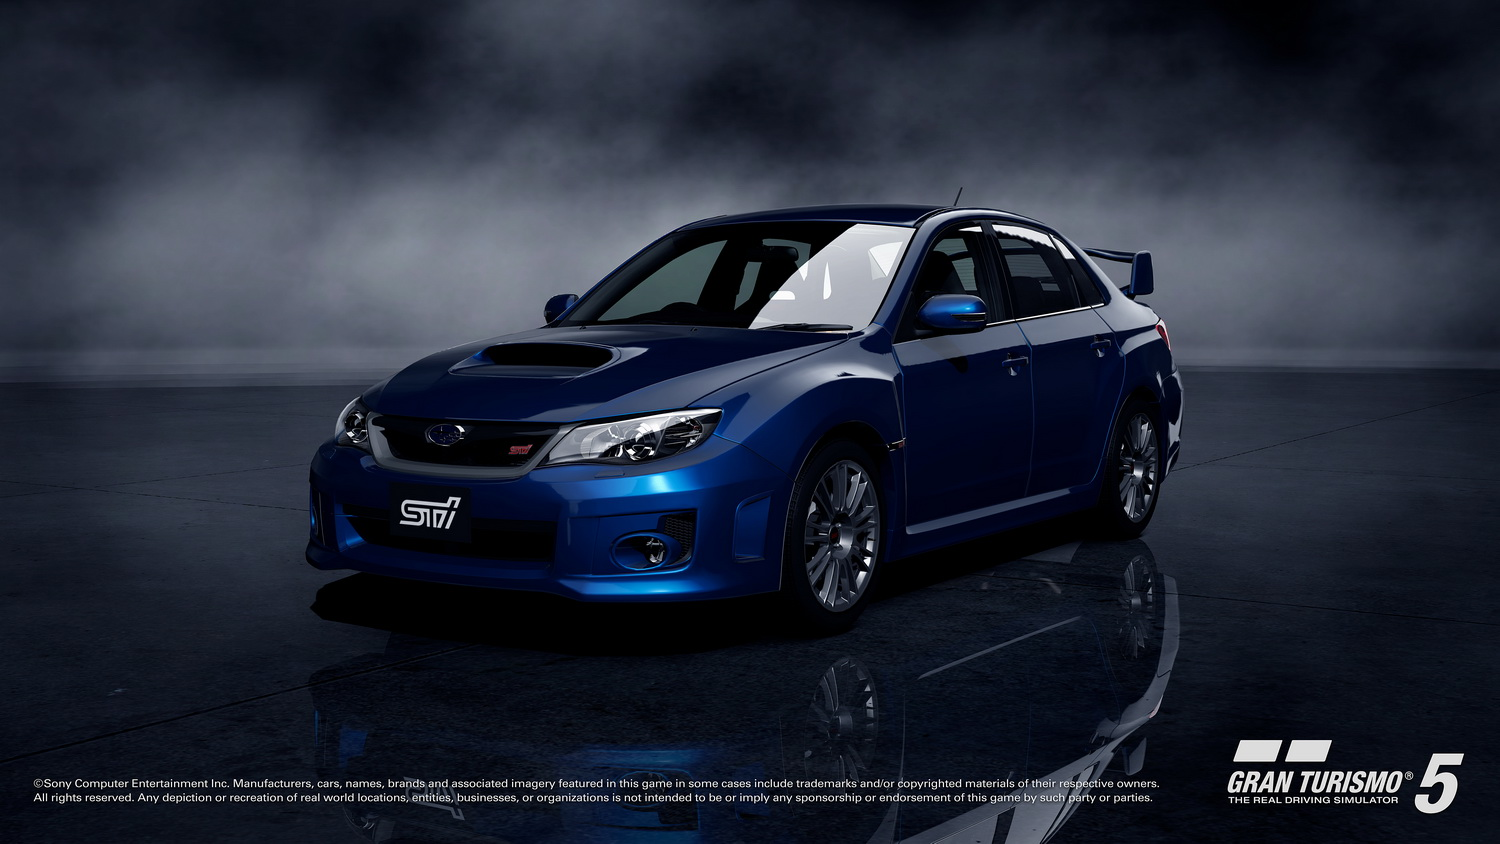 New Subaru Impreza WRX STI four door sedan will debut in Gran Turismo 1500x844